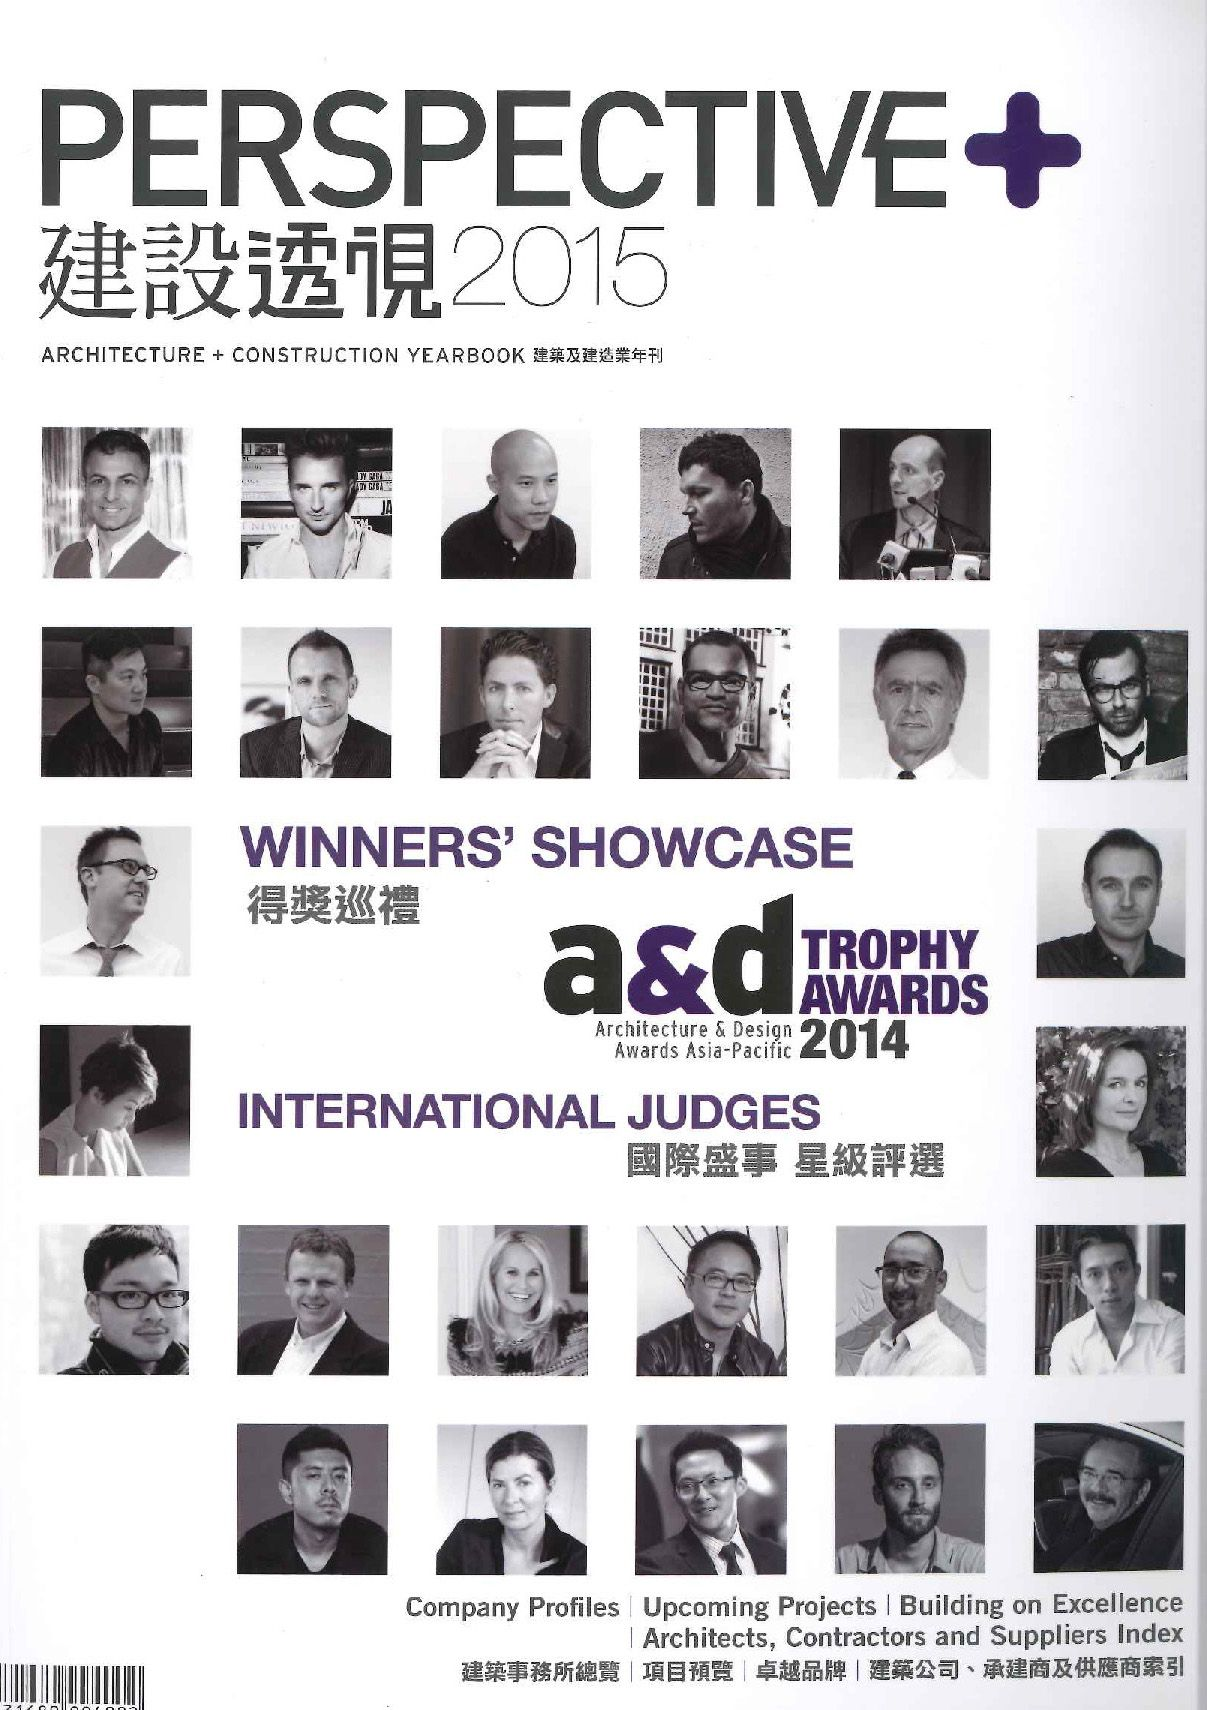 Architecture Design 2014 architecture and design award asia-pacific trophy awards for 2014